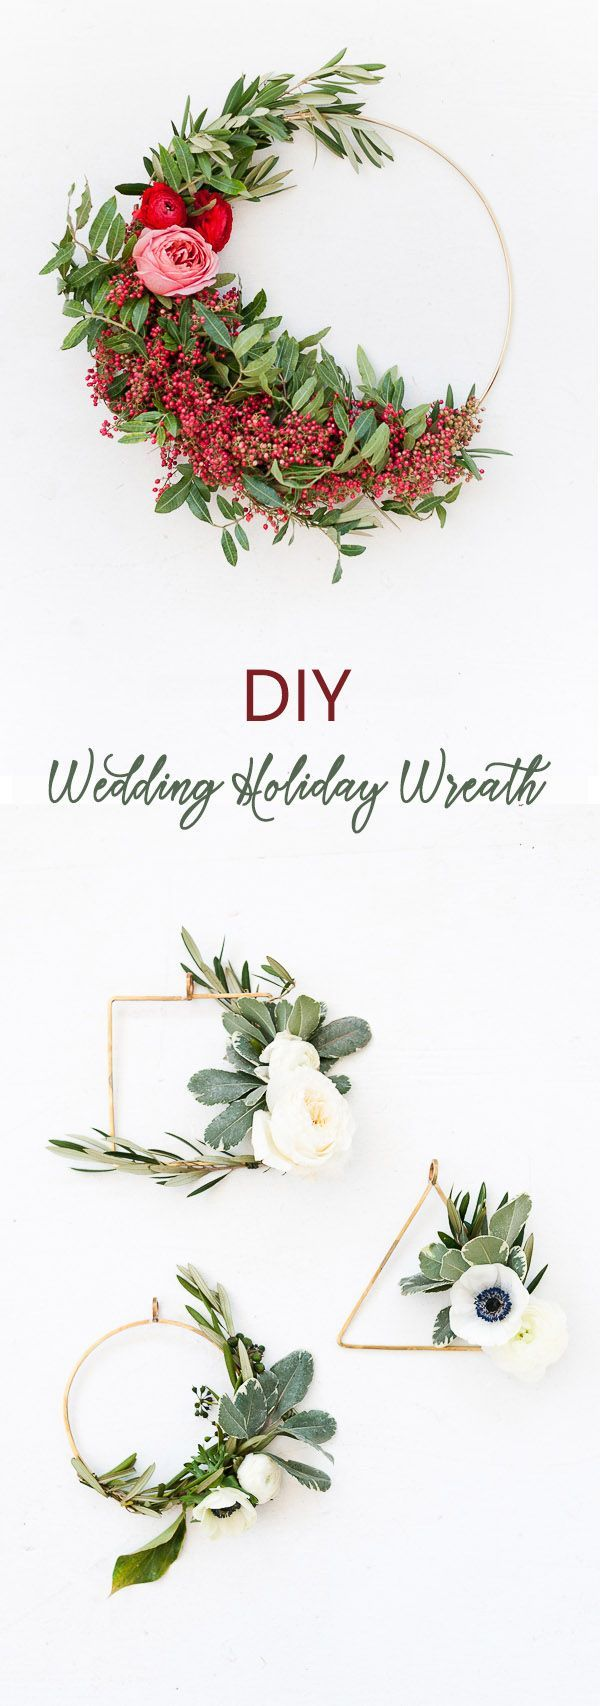 DIY floral and Greenery Holiday and Wedding Wreath Ideas